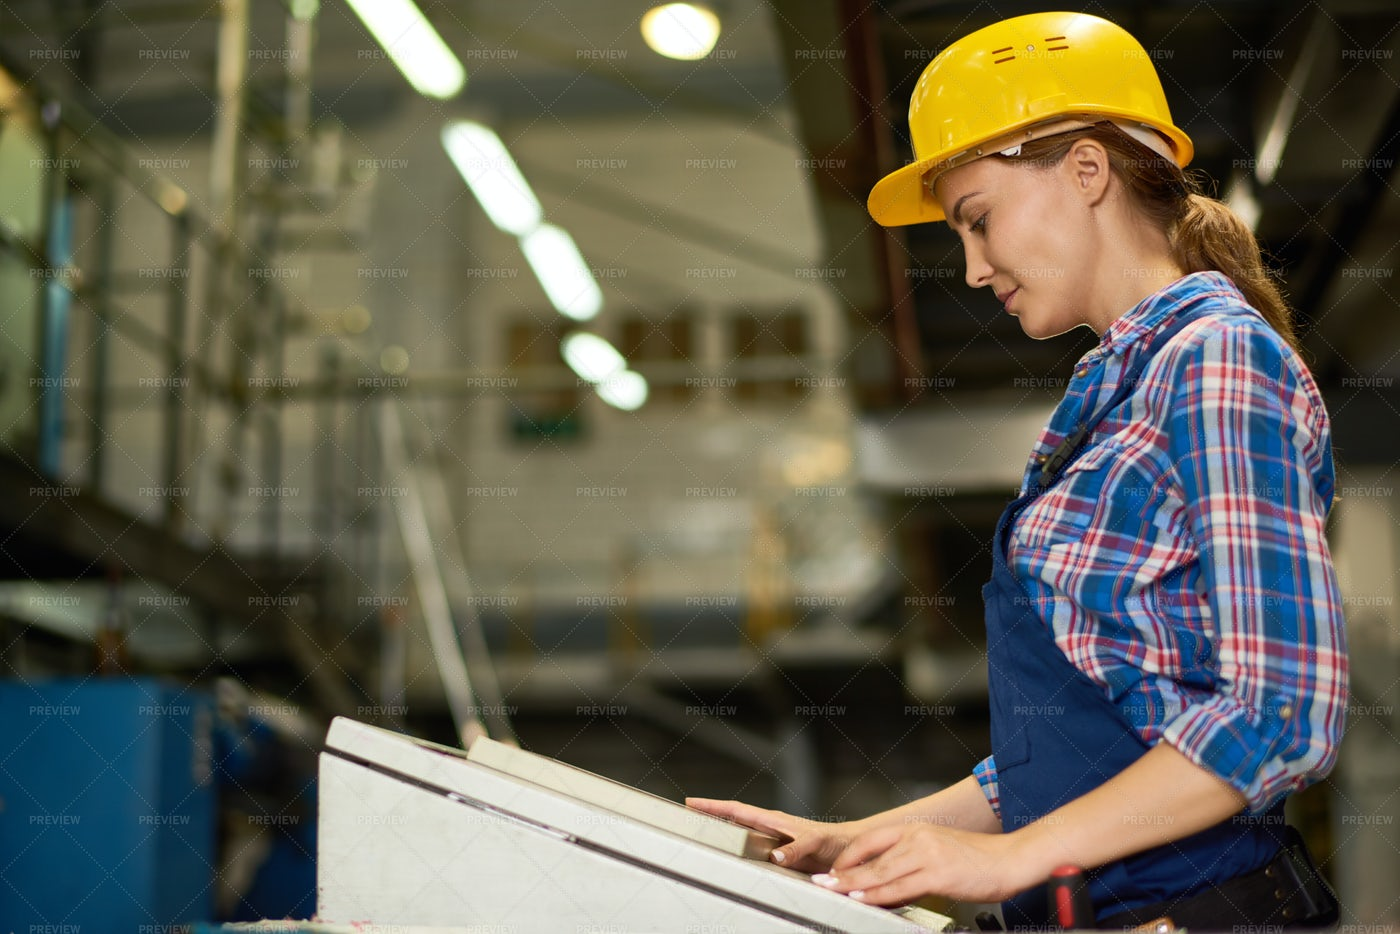 Young Woman Operating Machine Units...: Stock Photos